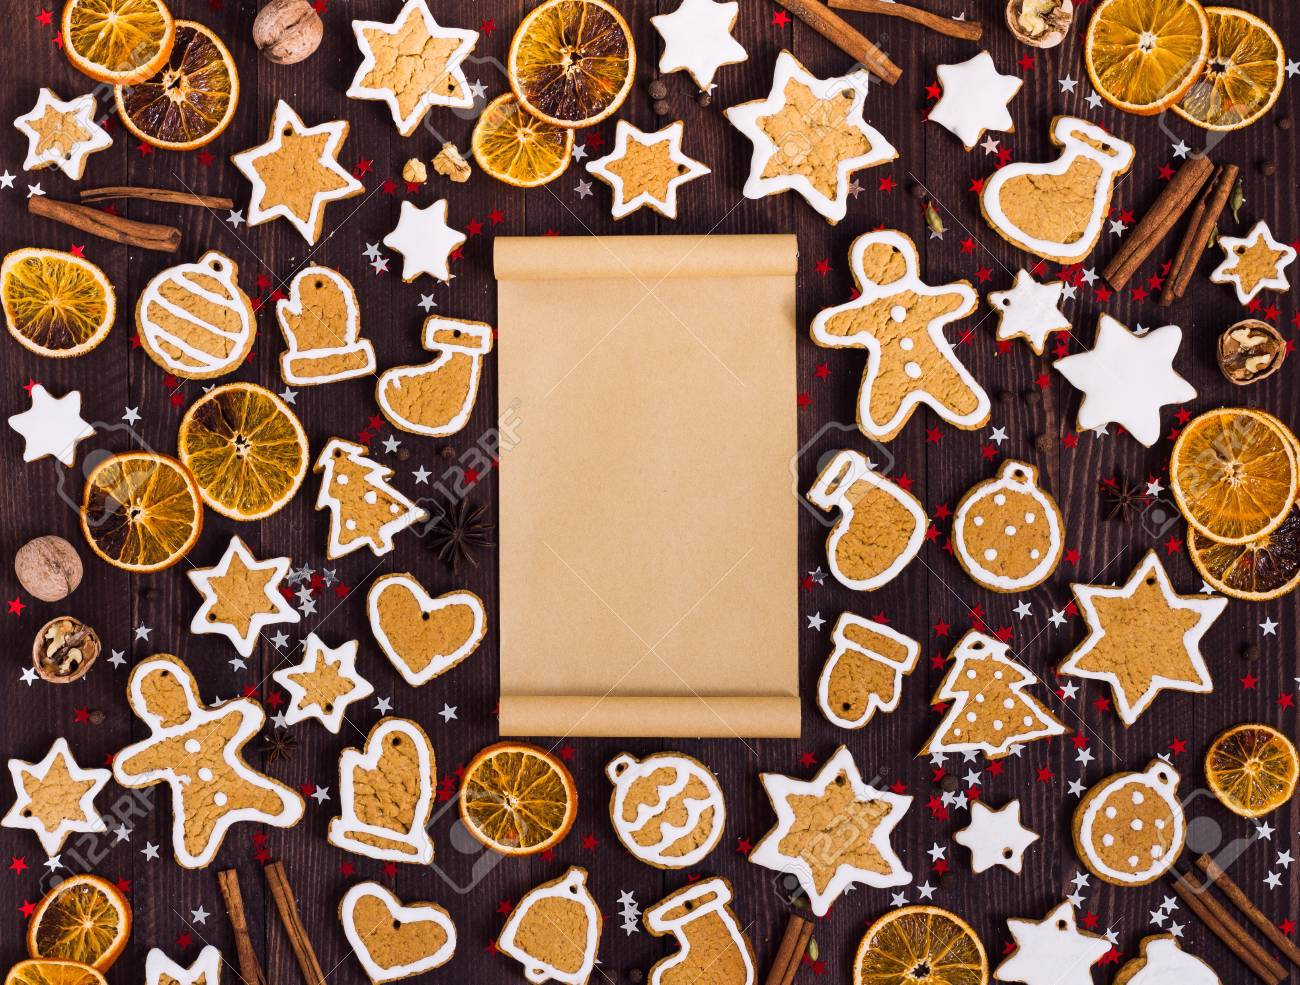 Gingerbread Cookies Christmas Empty Paper For Recipe New Year